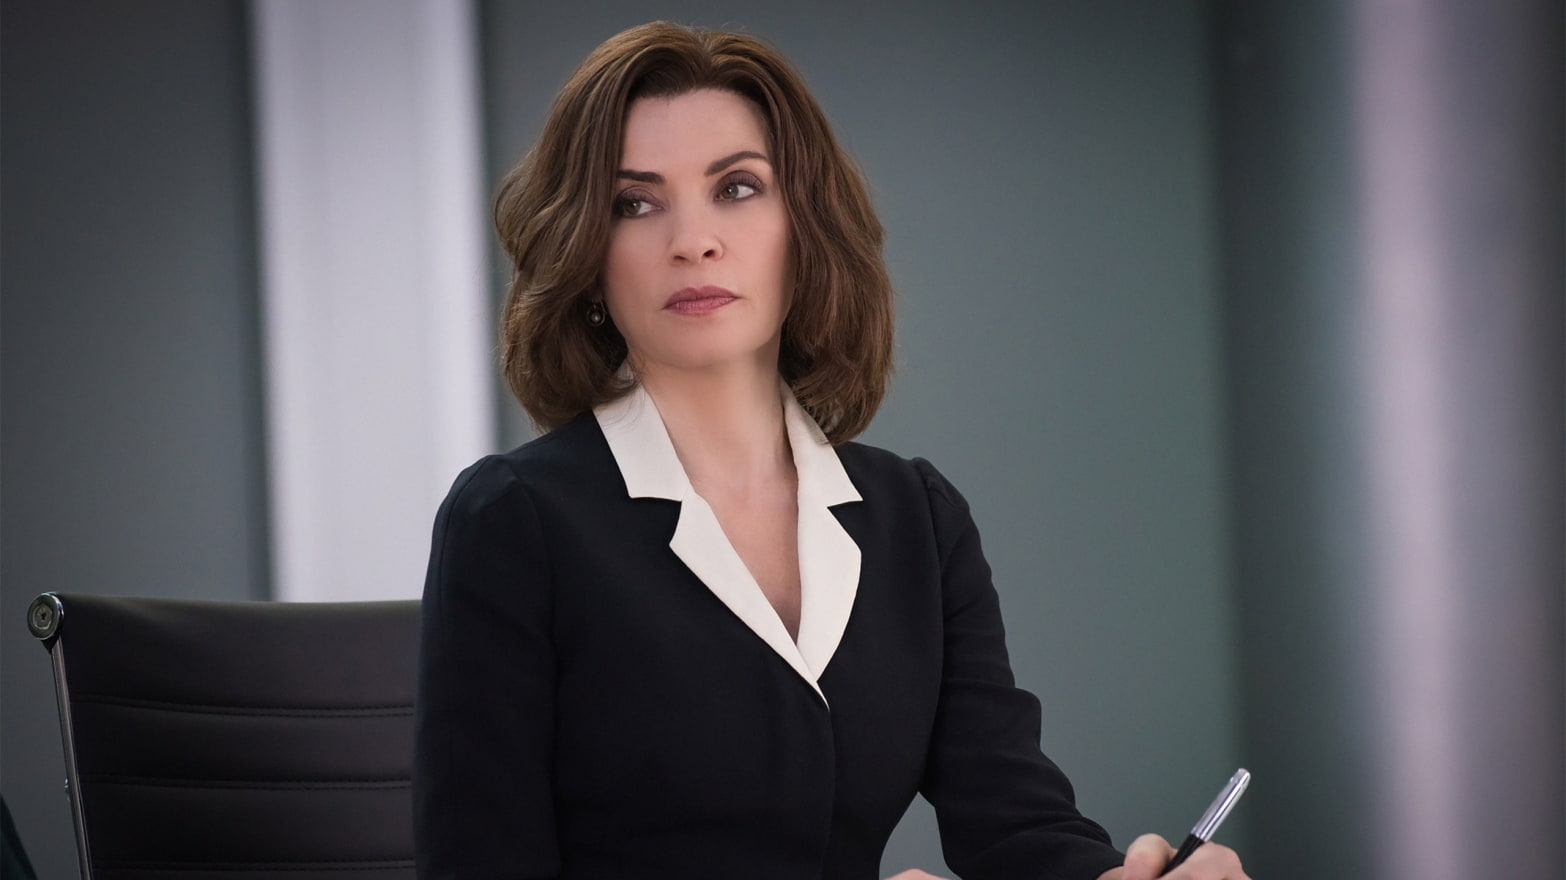 Julianna Margulies: The Good Wife Finale Is Nothing But